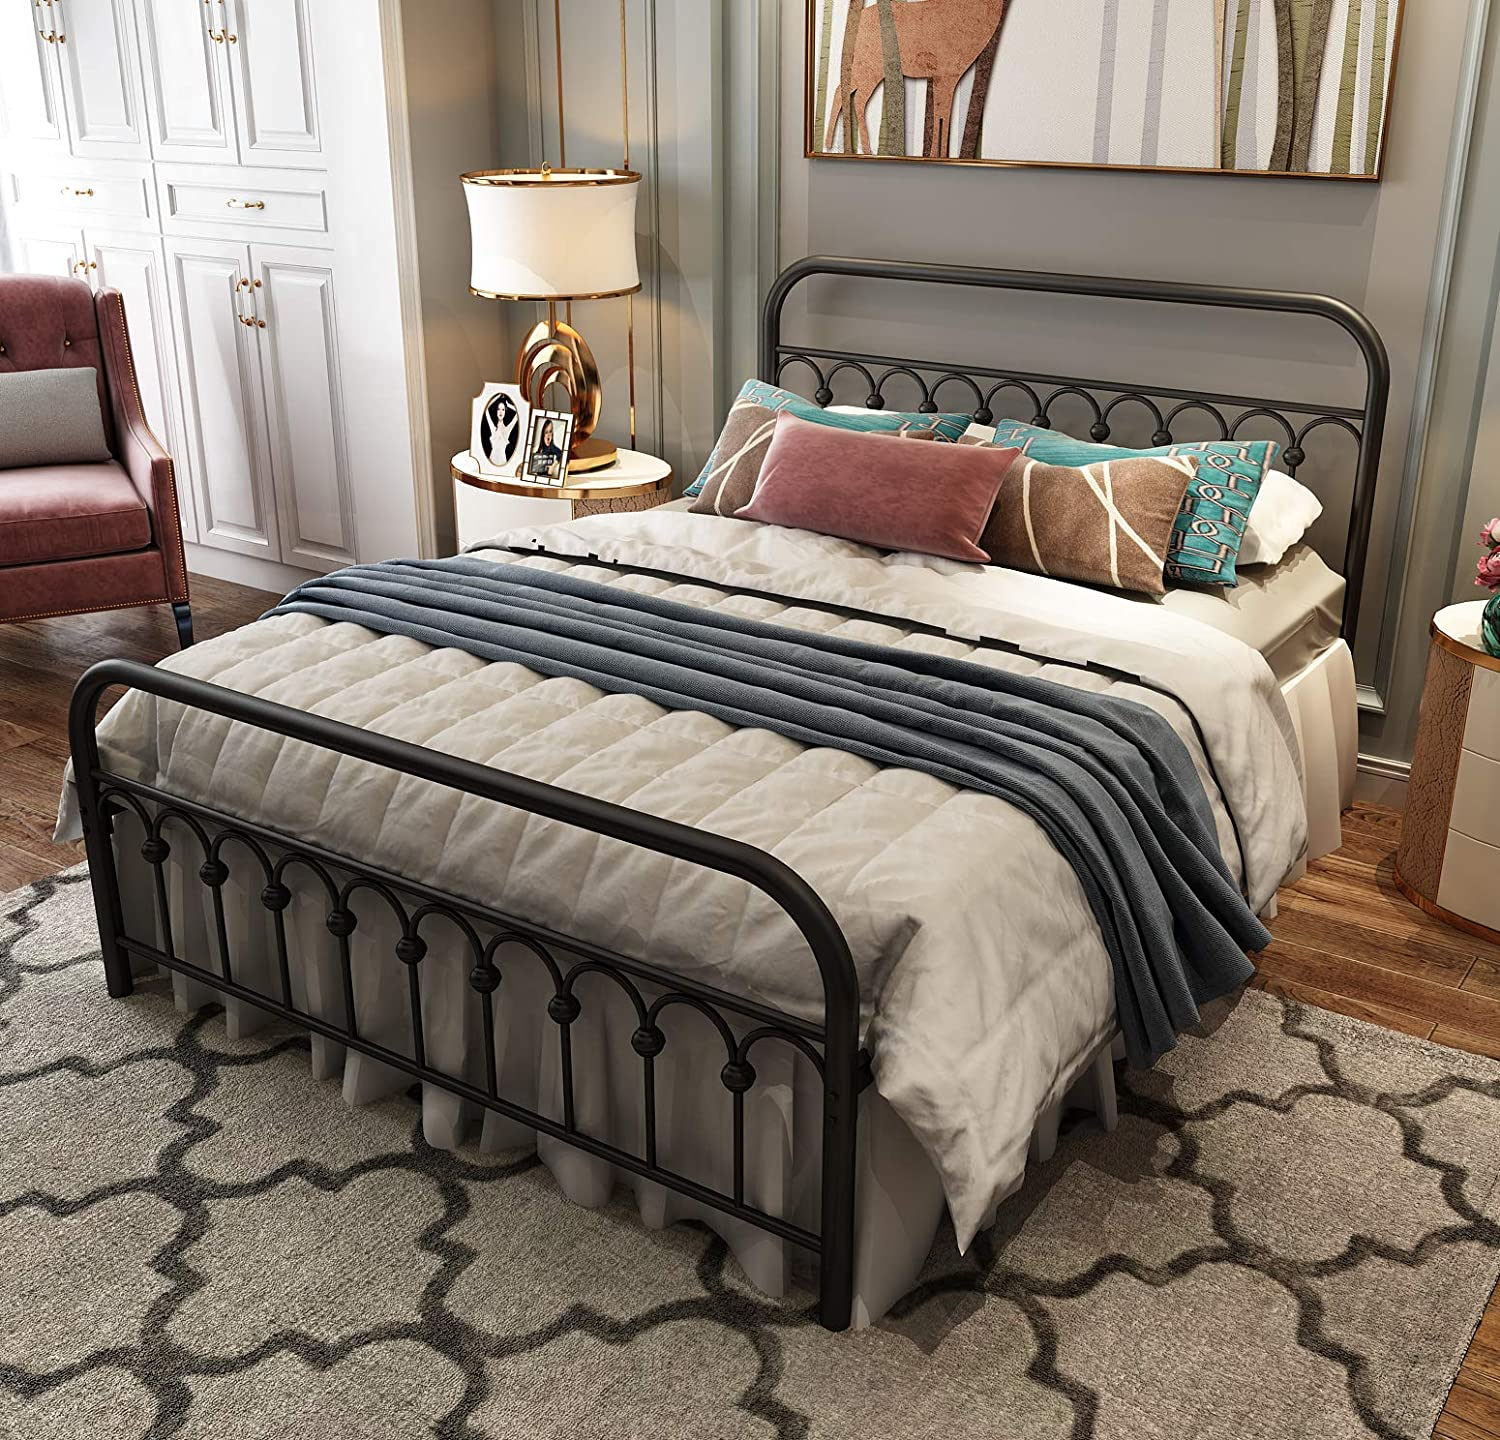 Metal Popular popular Bed Frame Queen Size and Vintage Footboard with Time sale Headboard